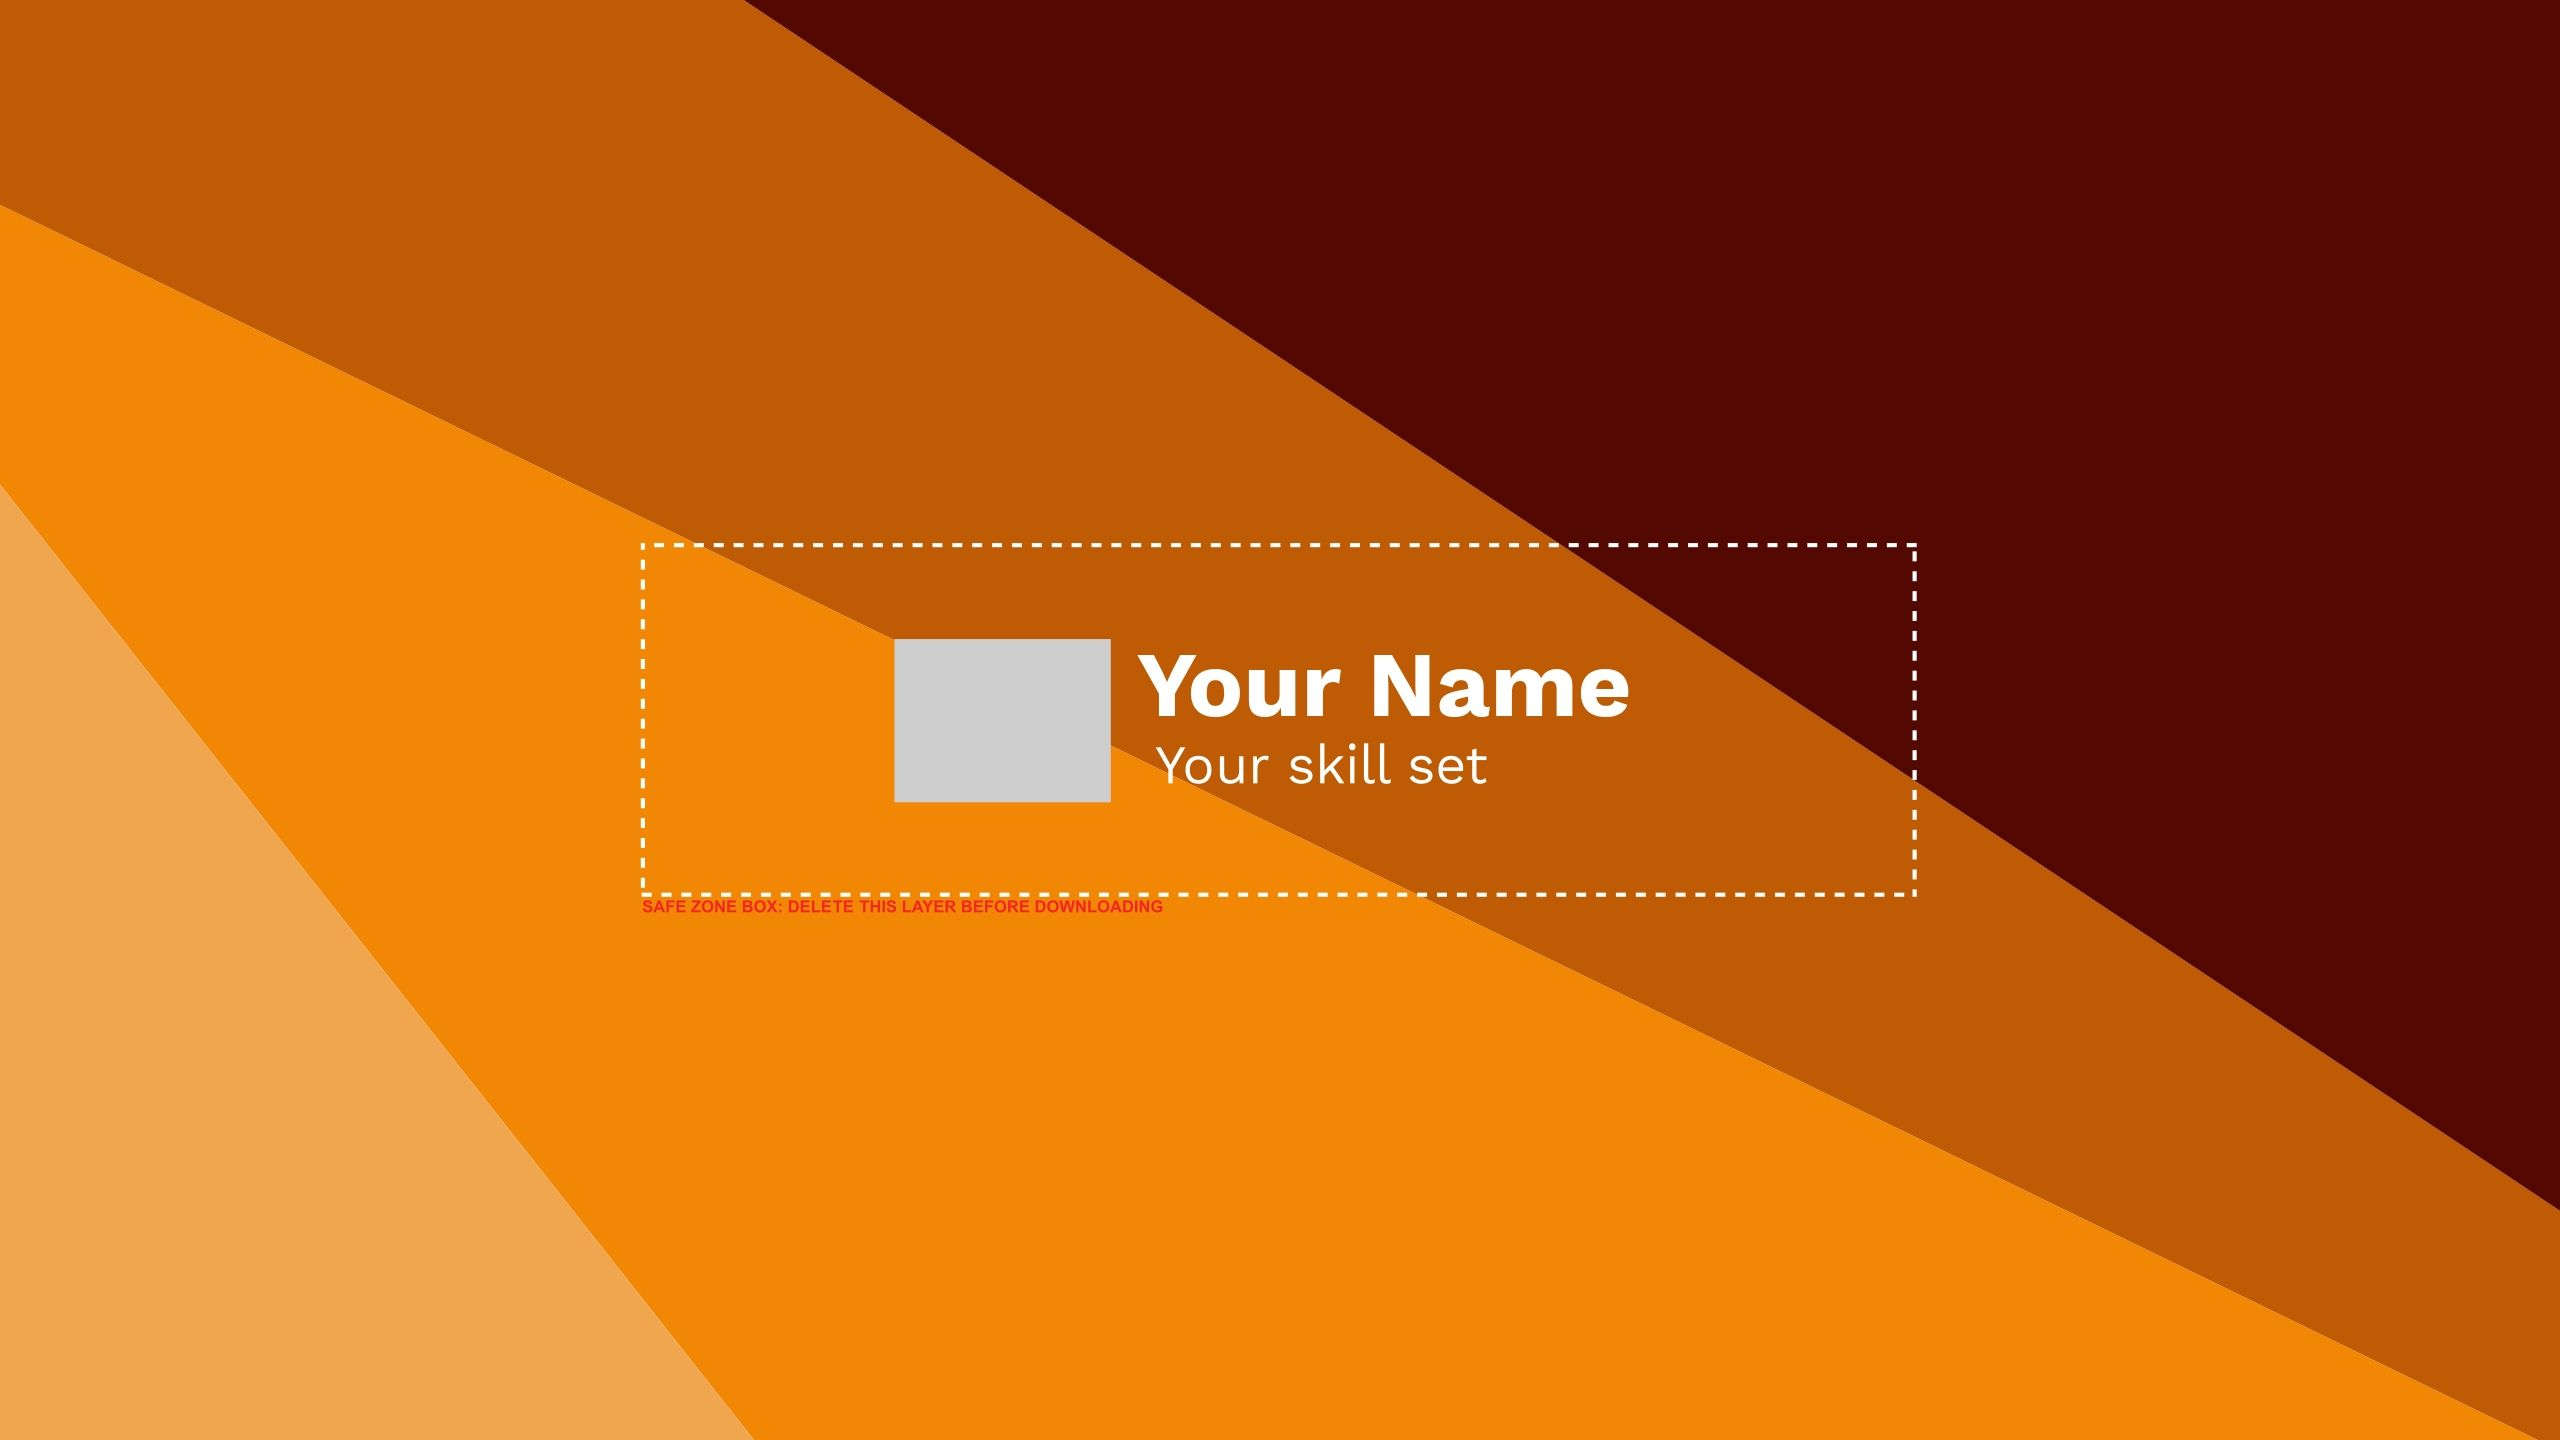 Customize This Youtube Cover Template Using Designwizard By Clicking